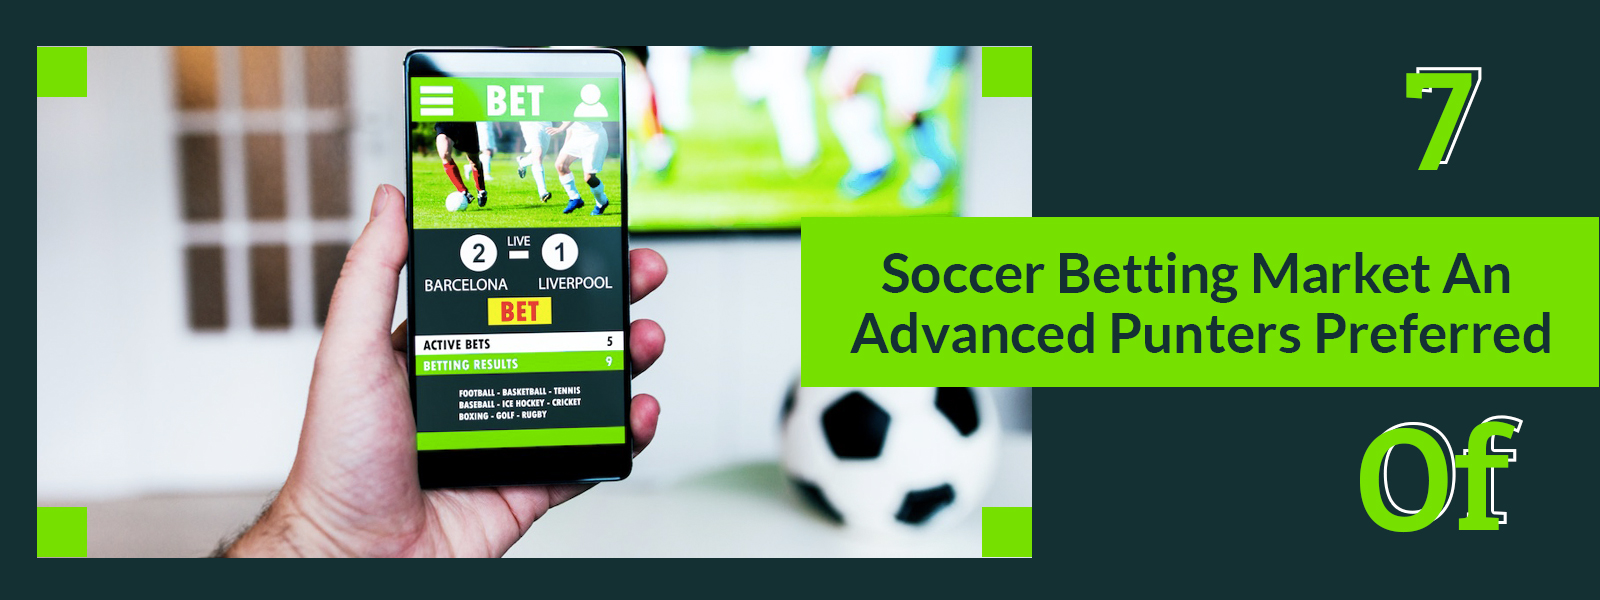 Seven Types Of Soccer Betting Markets An Advanced Punters Preferred